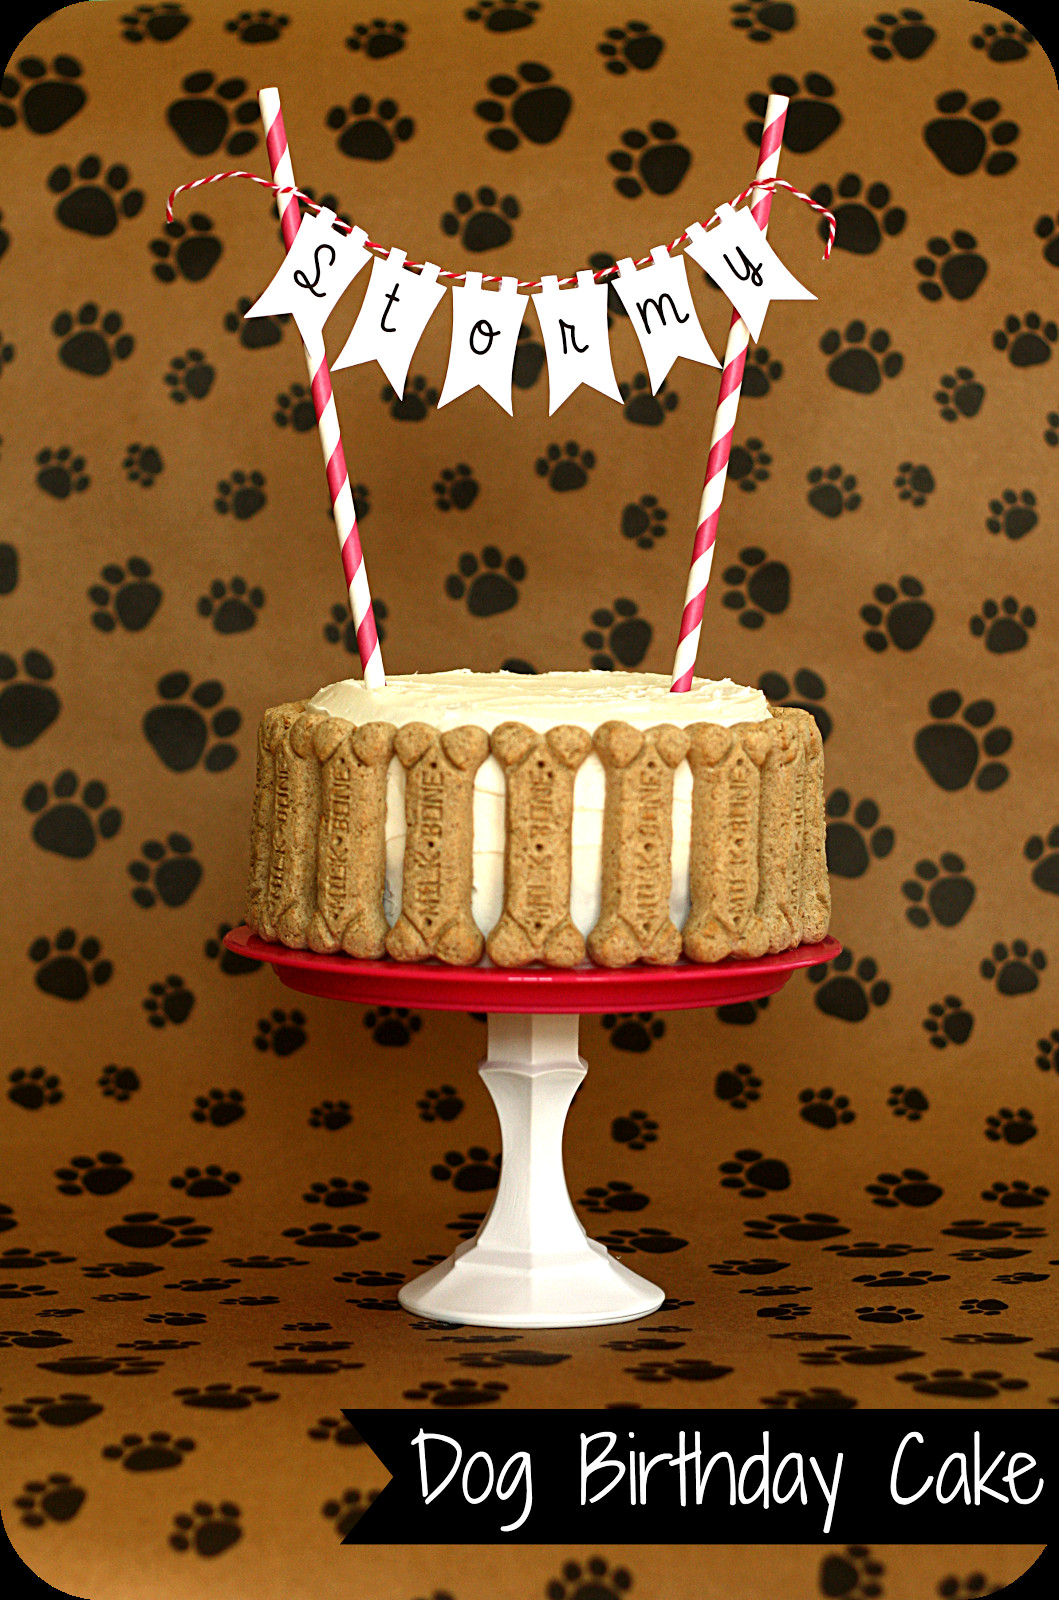 Dog Birthday Cake  Keeping My Cents ¢¢¢ Dog Birthday